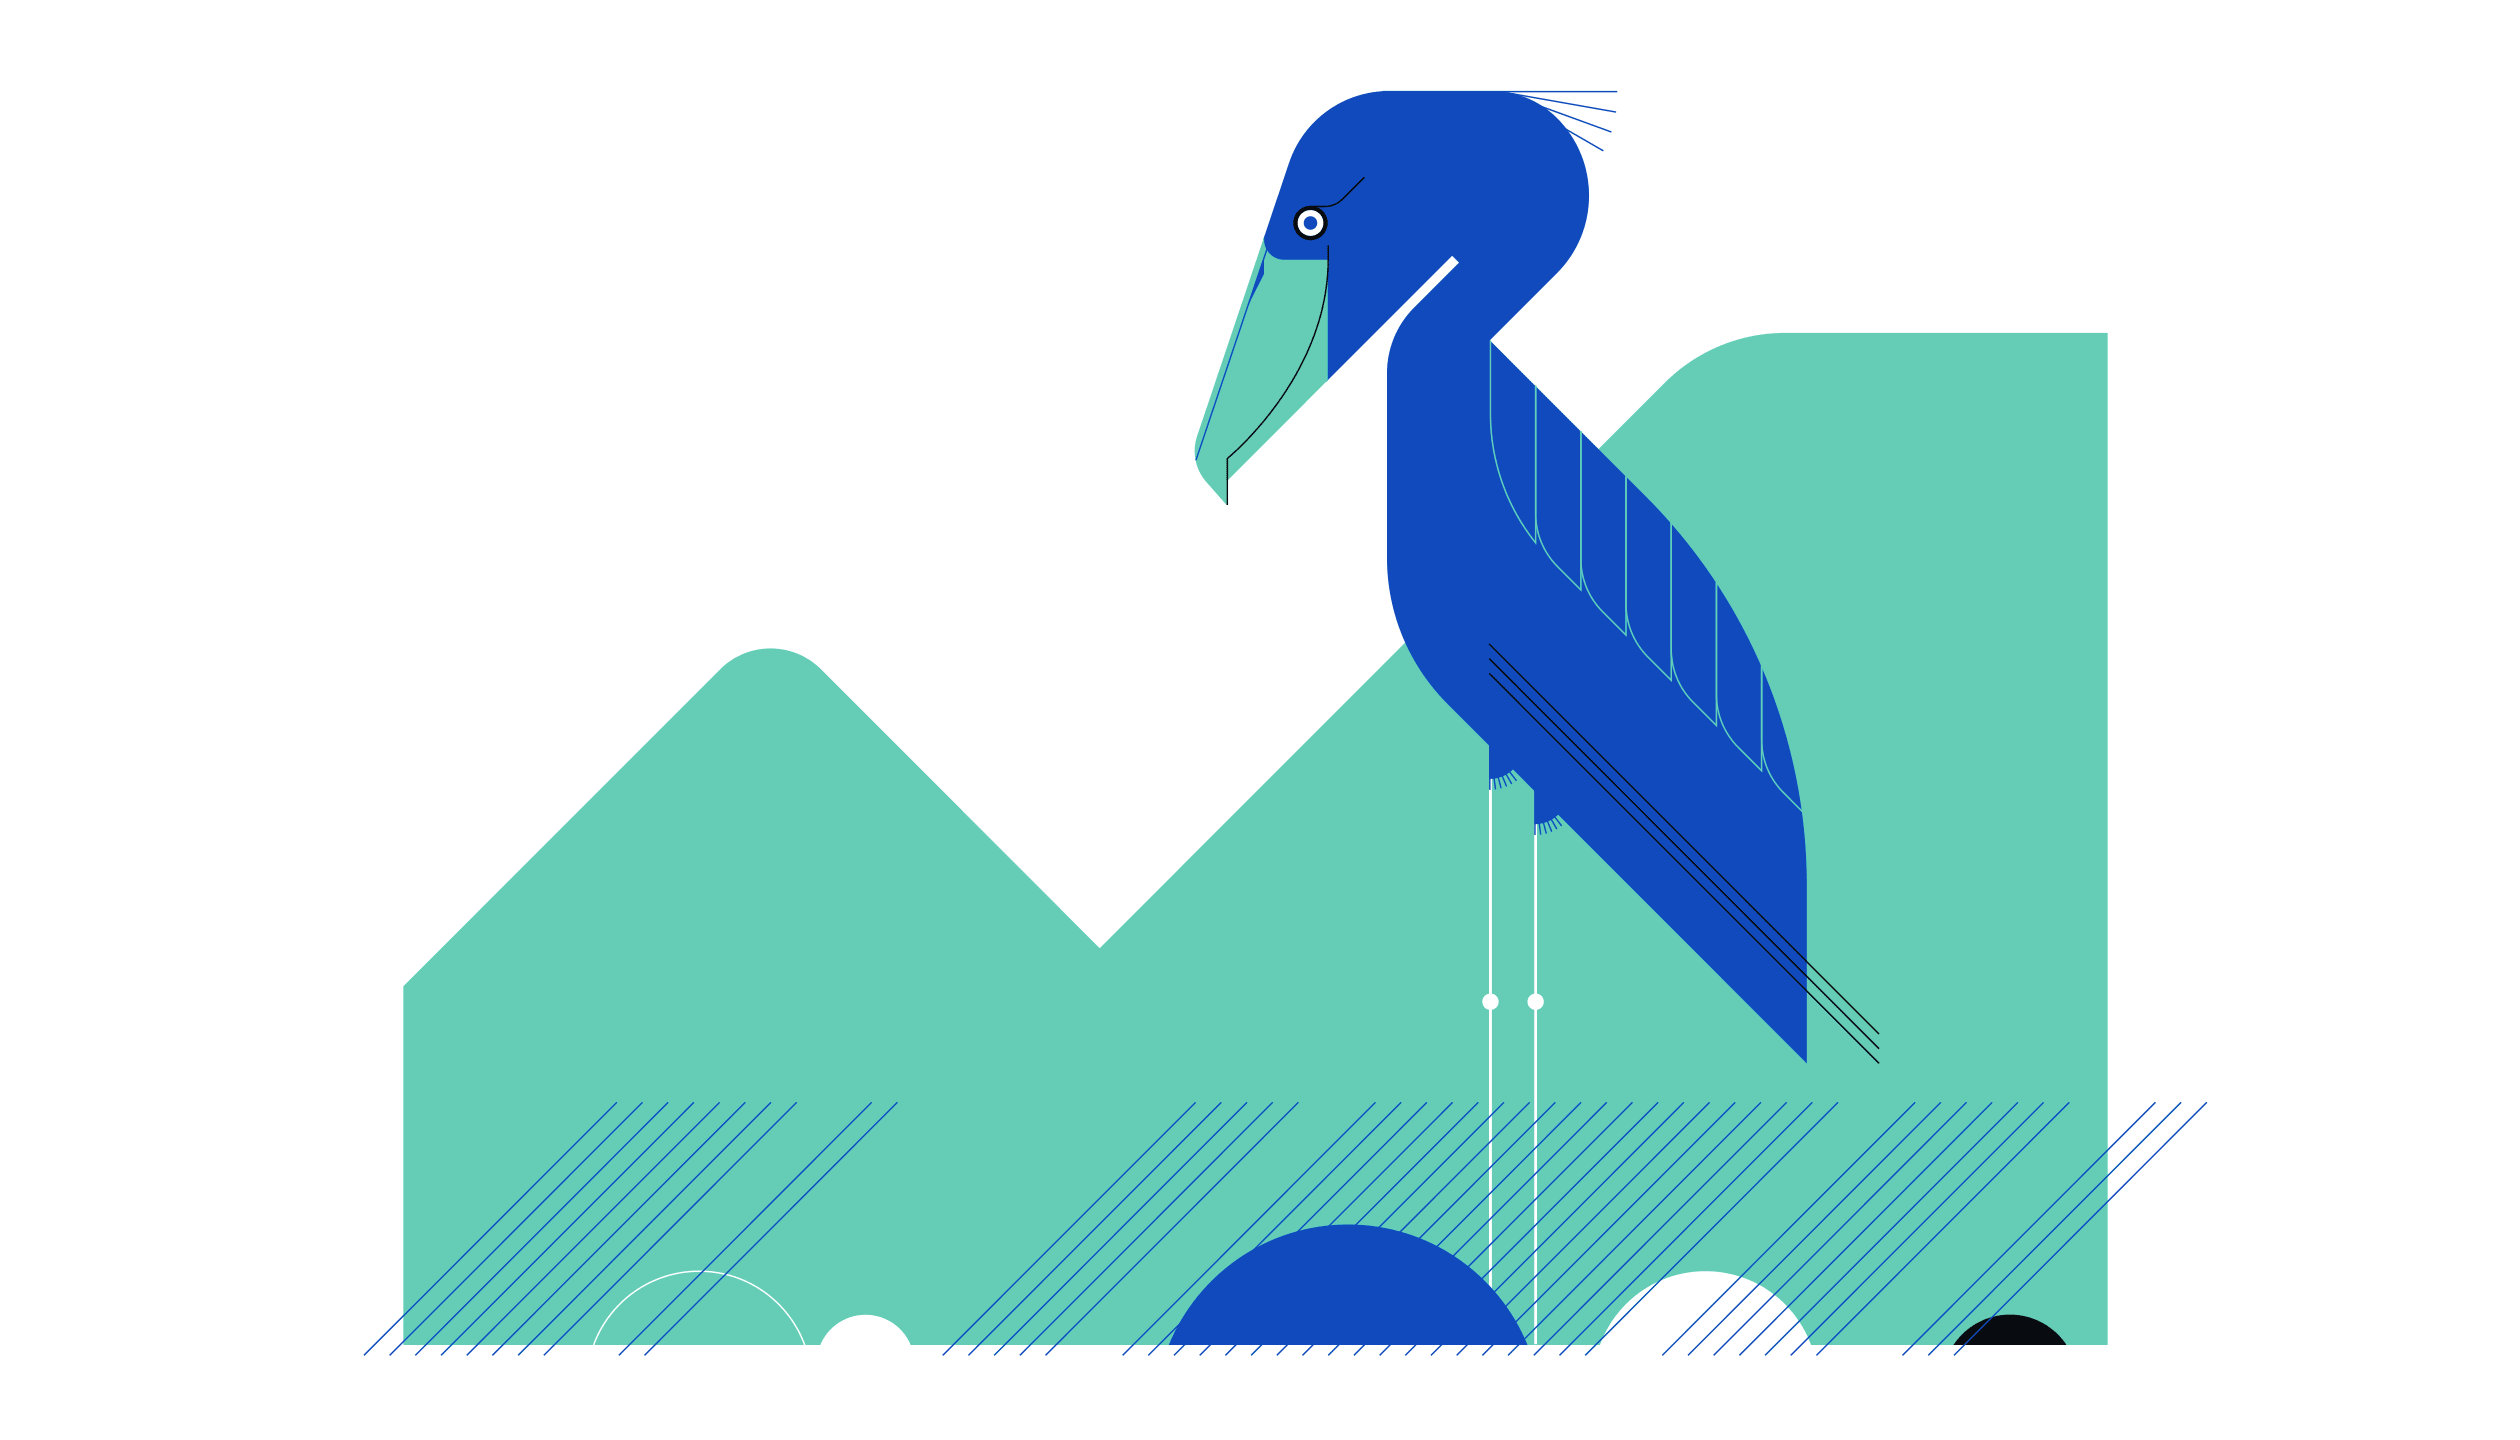 Shoe Bill Stork Illustration